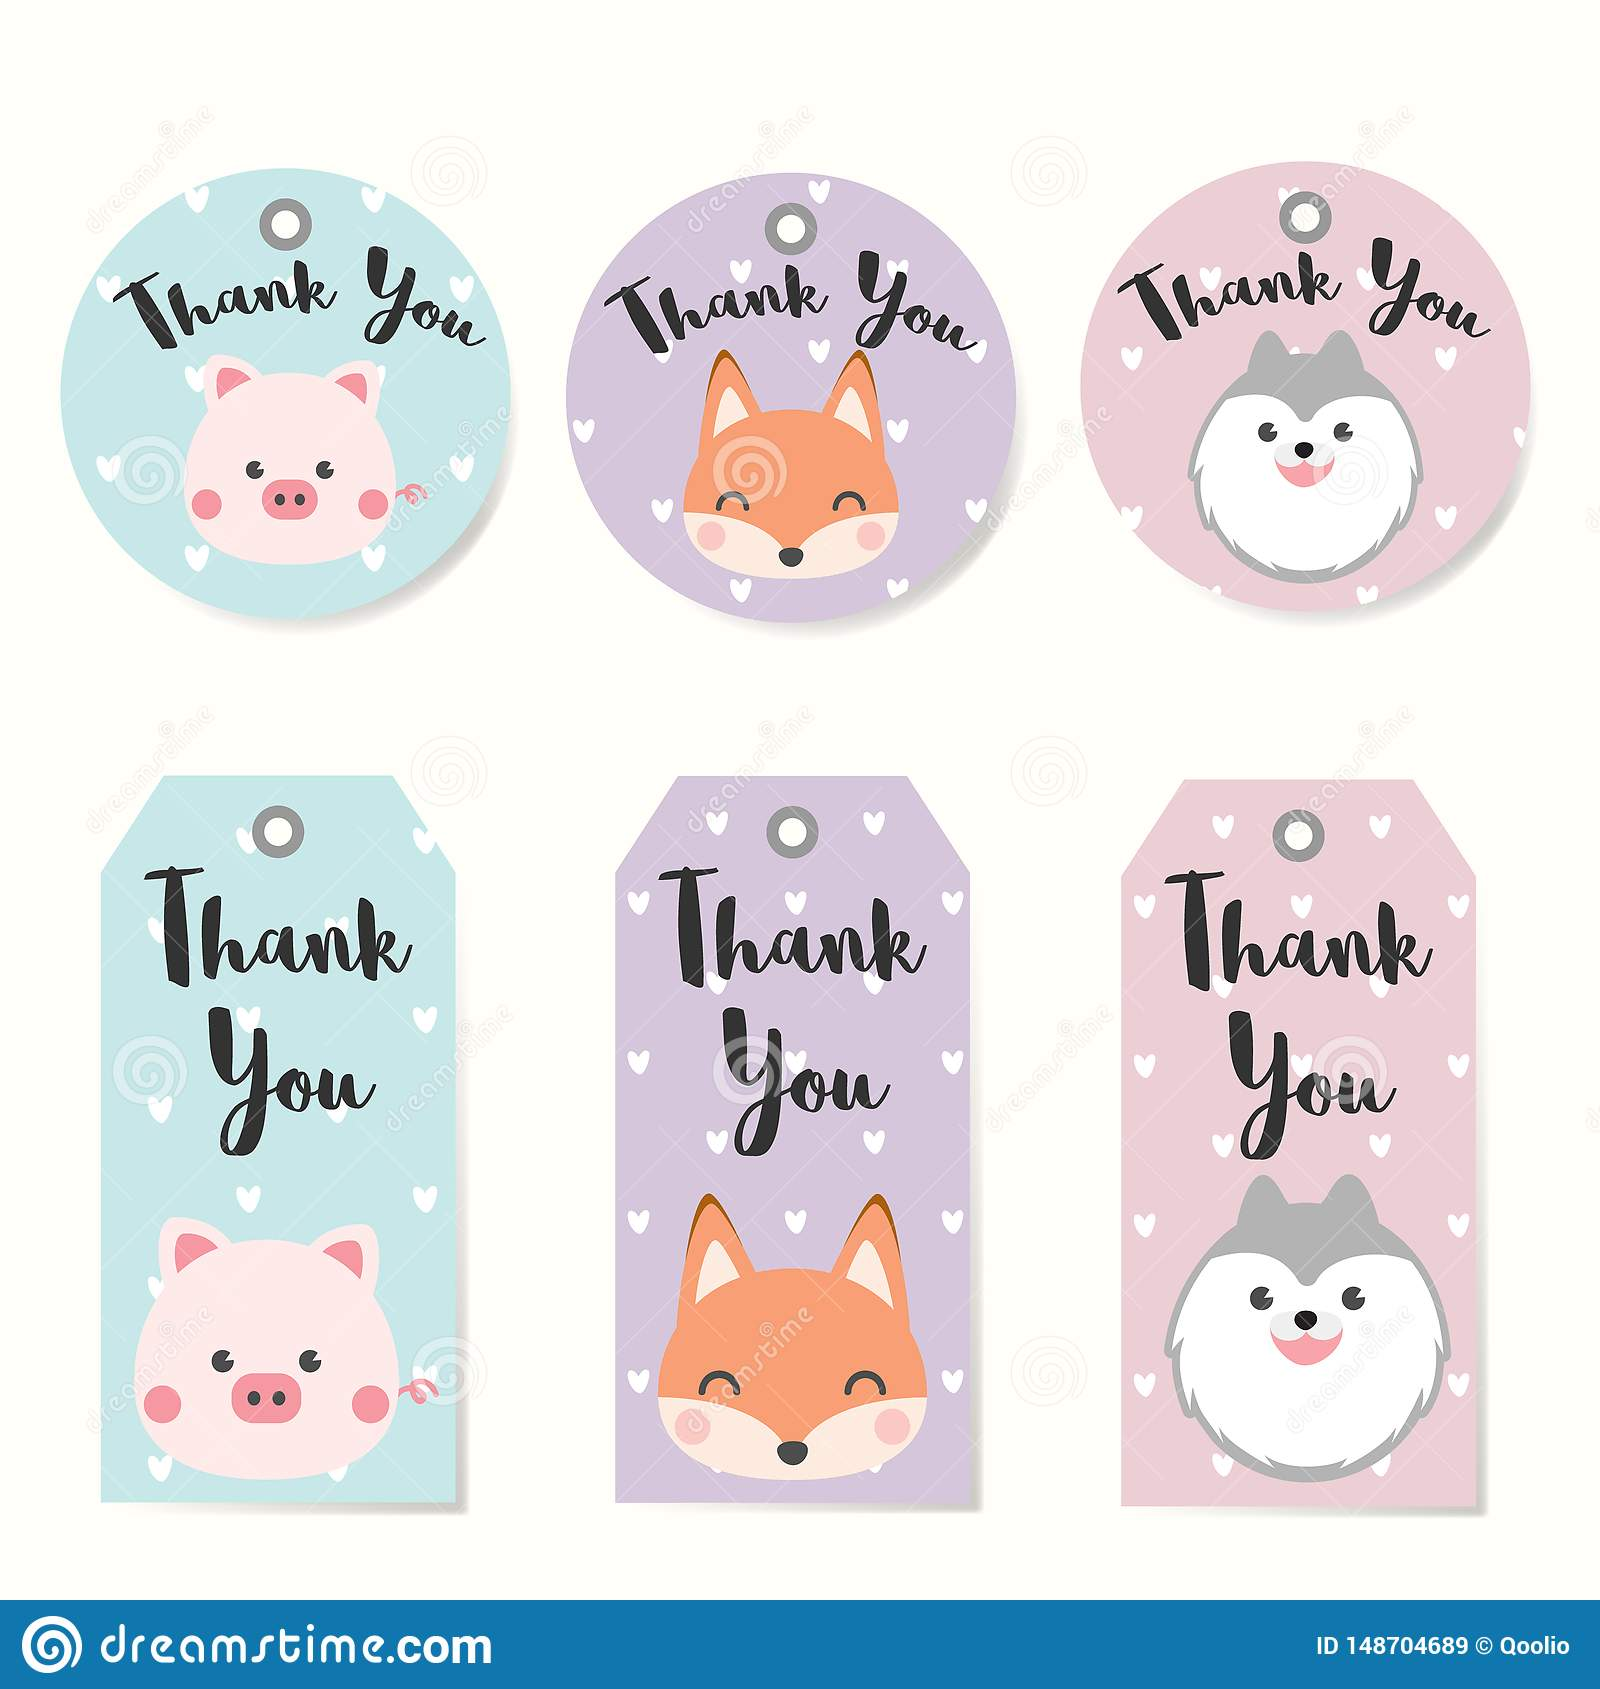 photograph about Thank You Printable Tag known as Preset Of Label Tags With Pets Individuality Structure. Thank On your own